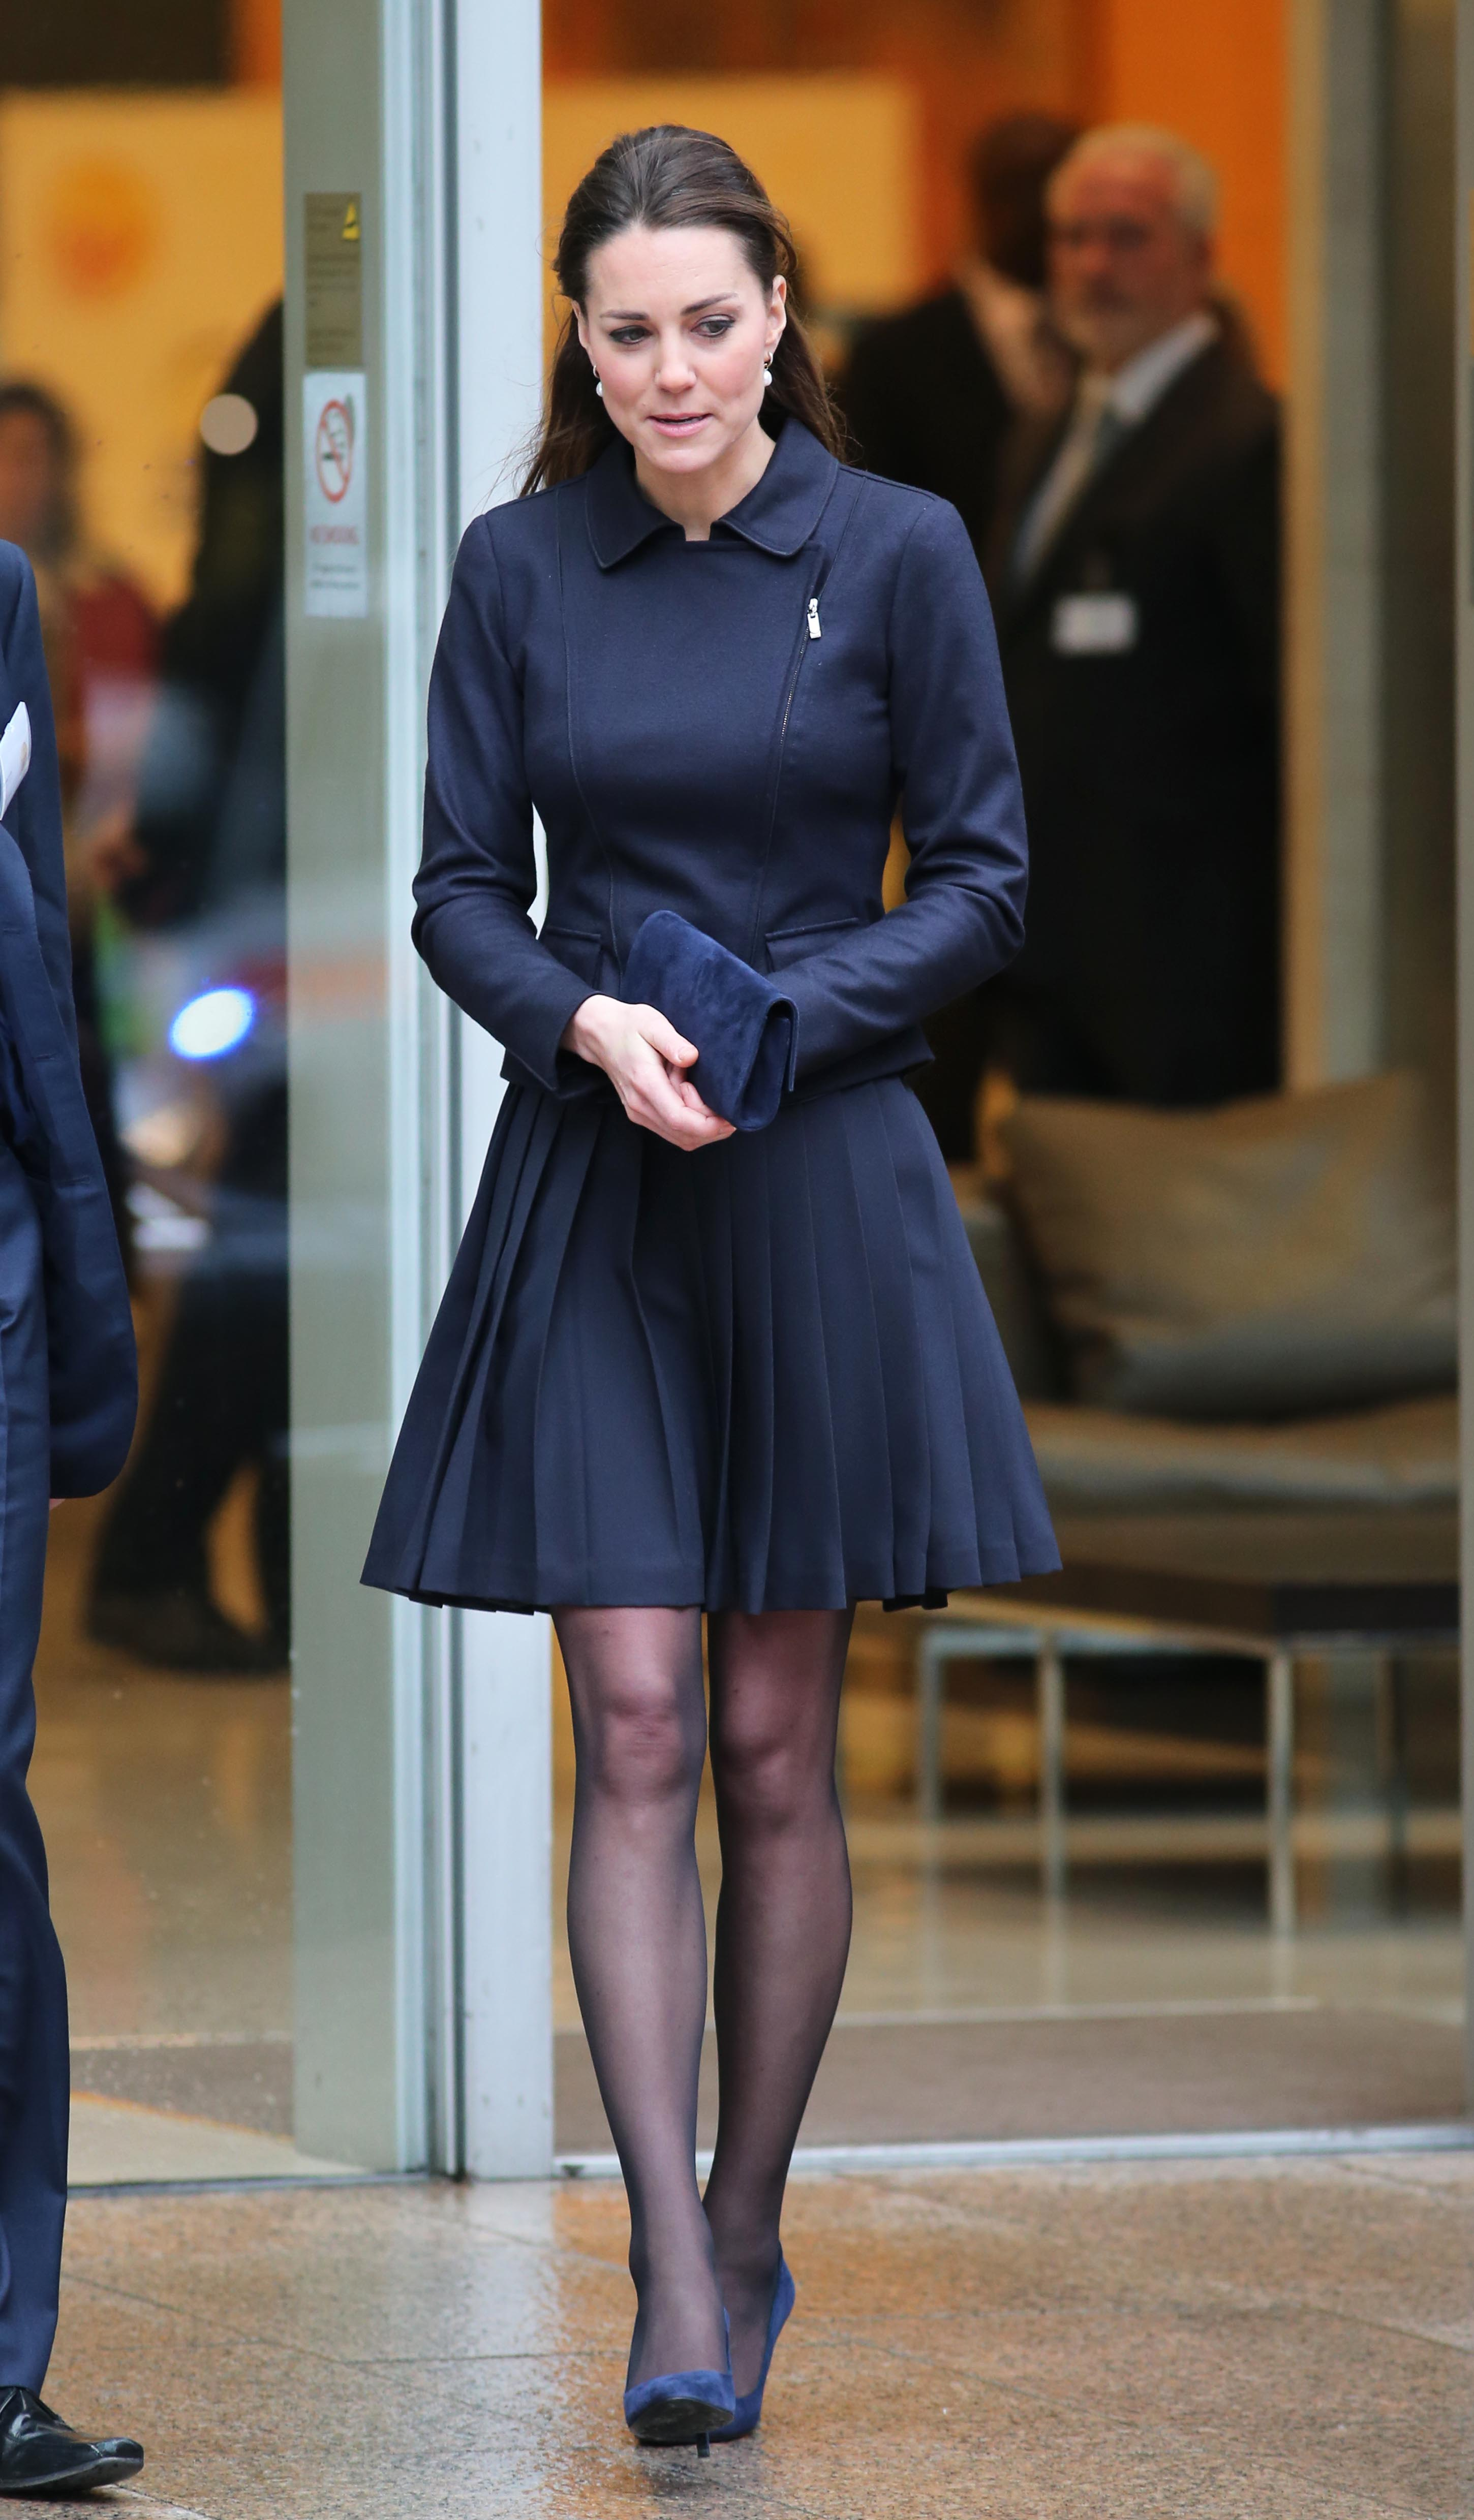 Navy Blue Dress With Black Tights And Shoes